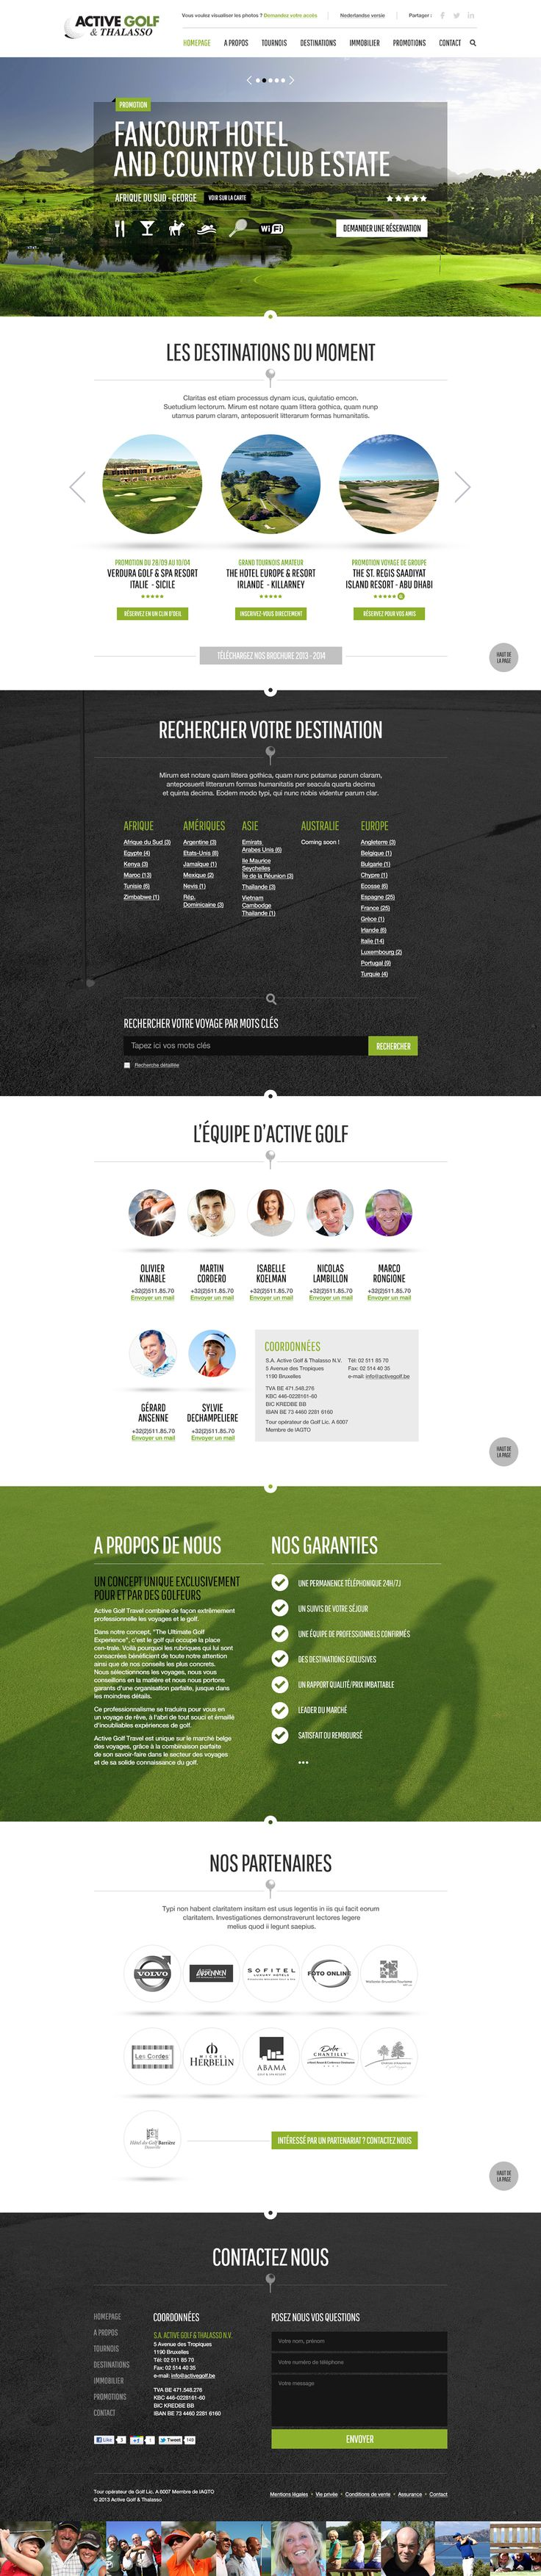 Active Golf Website on Behance